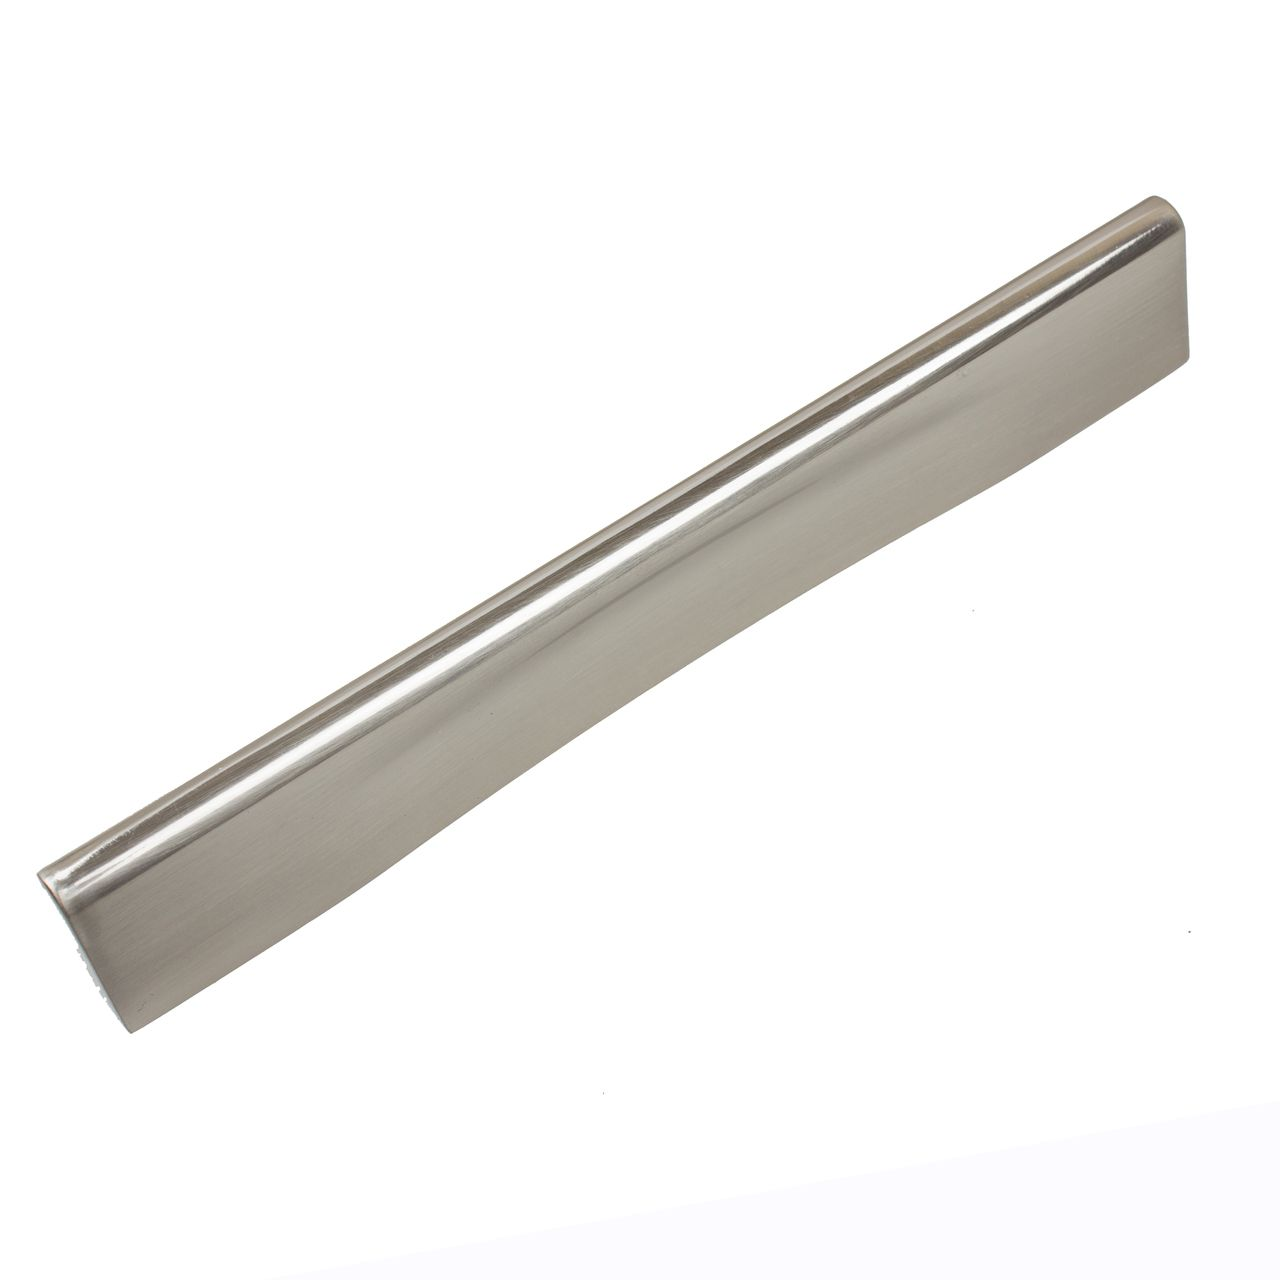 for inside cabinet southern pull intended knobs monasheephoto hardware pulls new drawer com modern spacing hills in nickel brushed and richelieu inch by screw